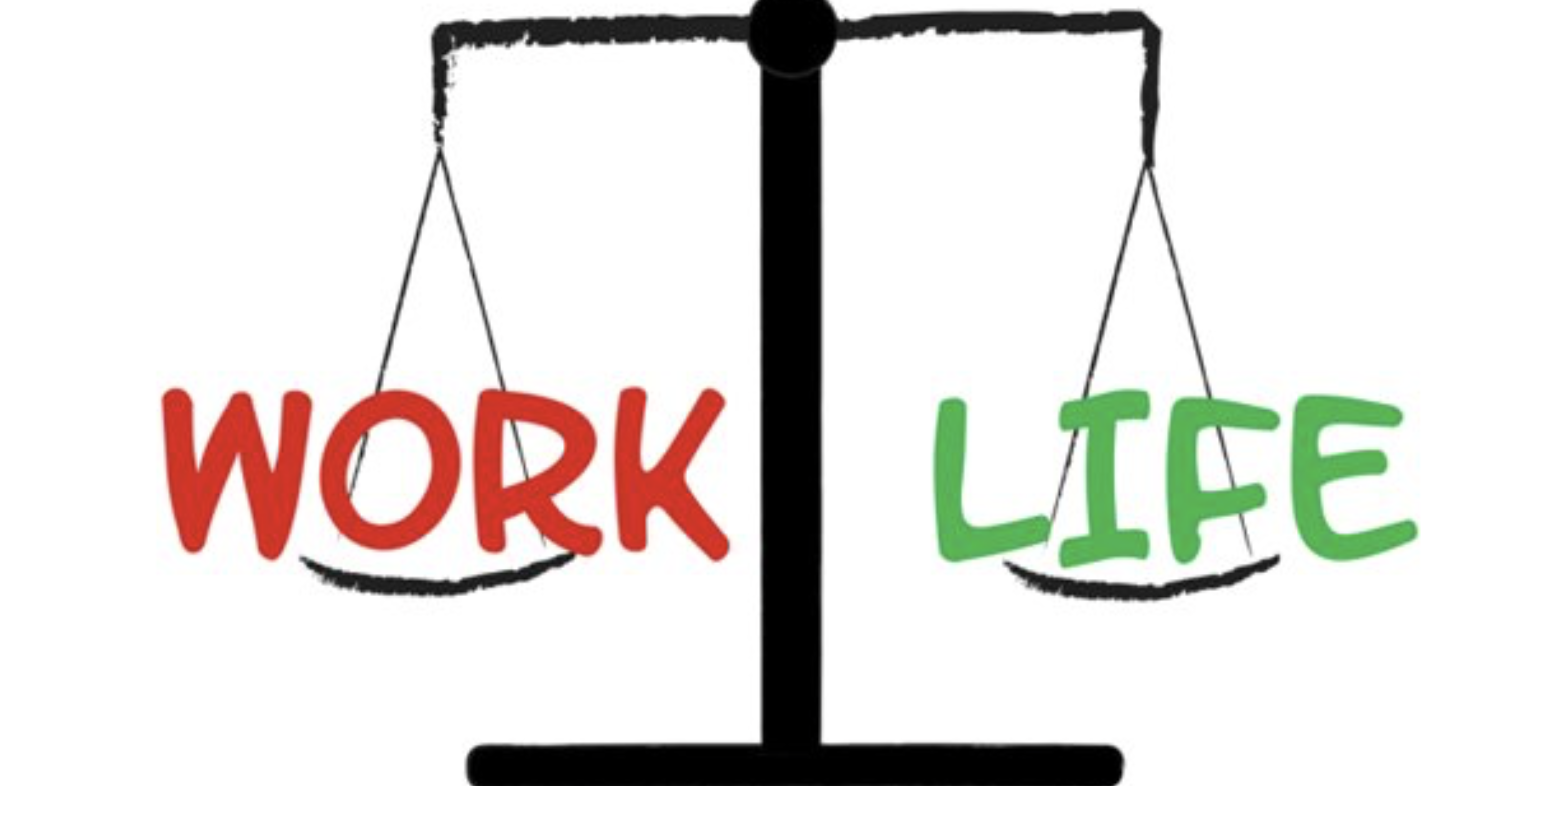 Work-Life Equilibrium: 20 Tips to Prevent Tipping Over